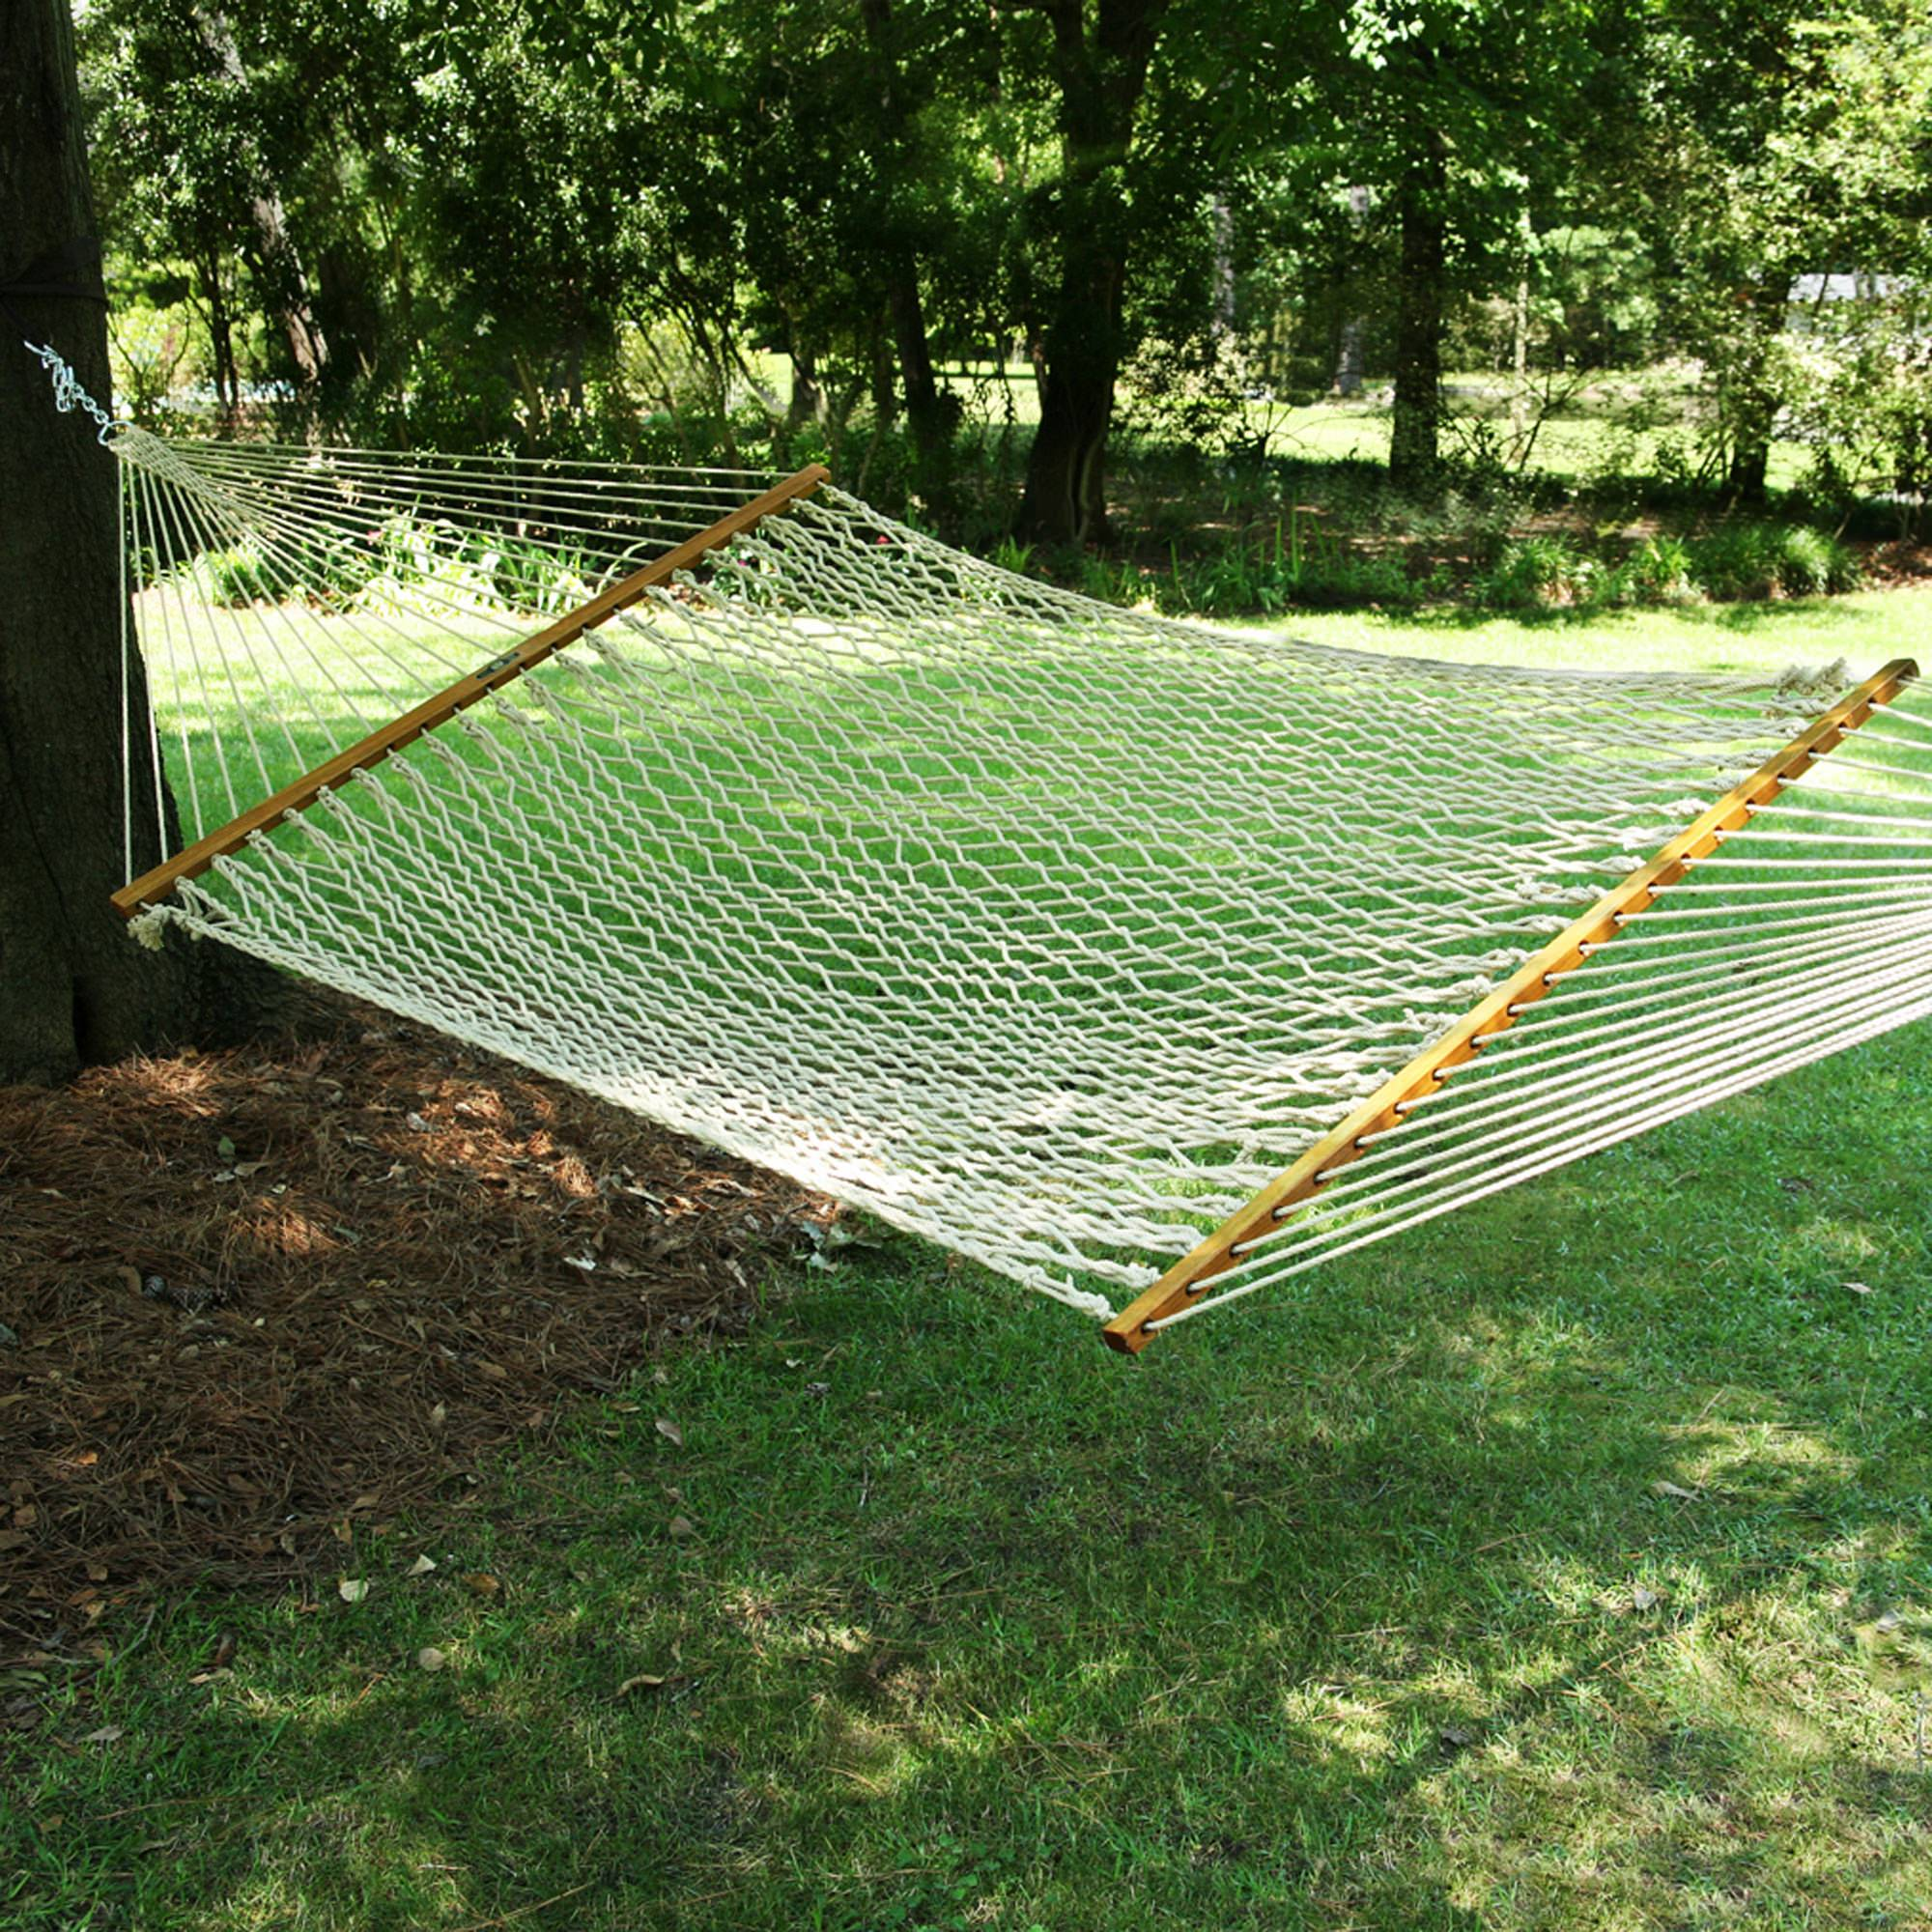 hammock empirepatio itemdetail cotton cottonrope rope